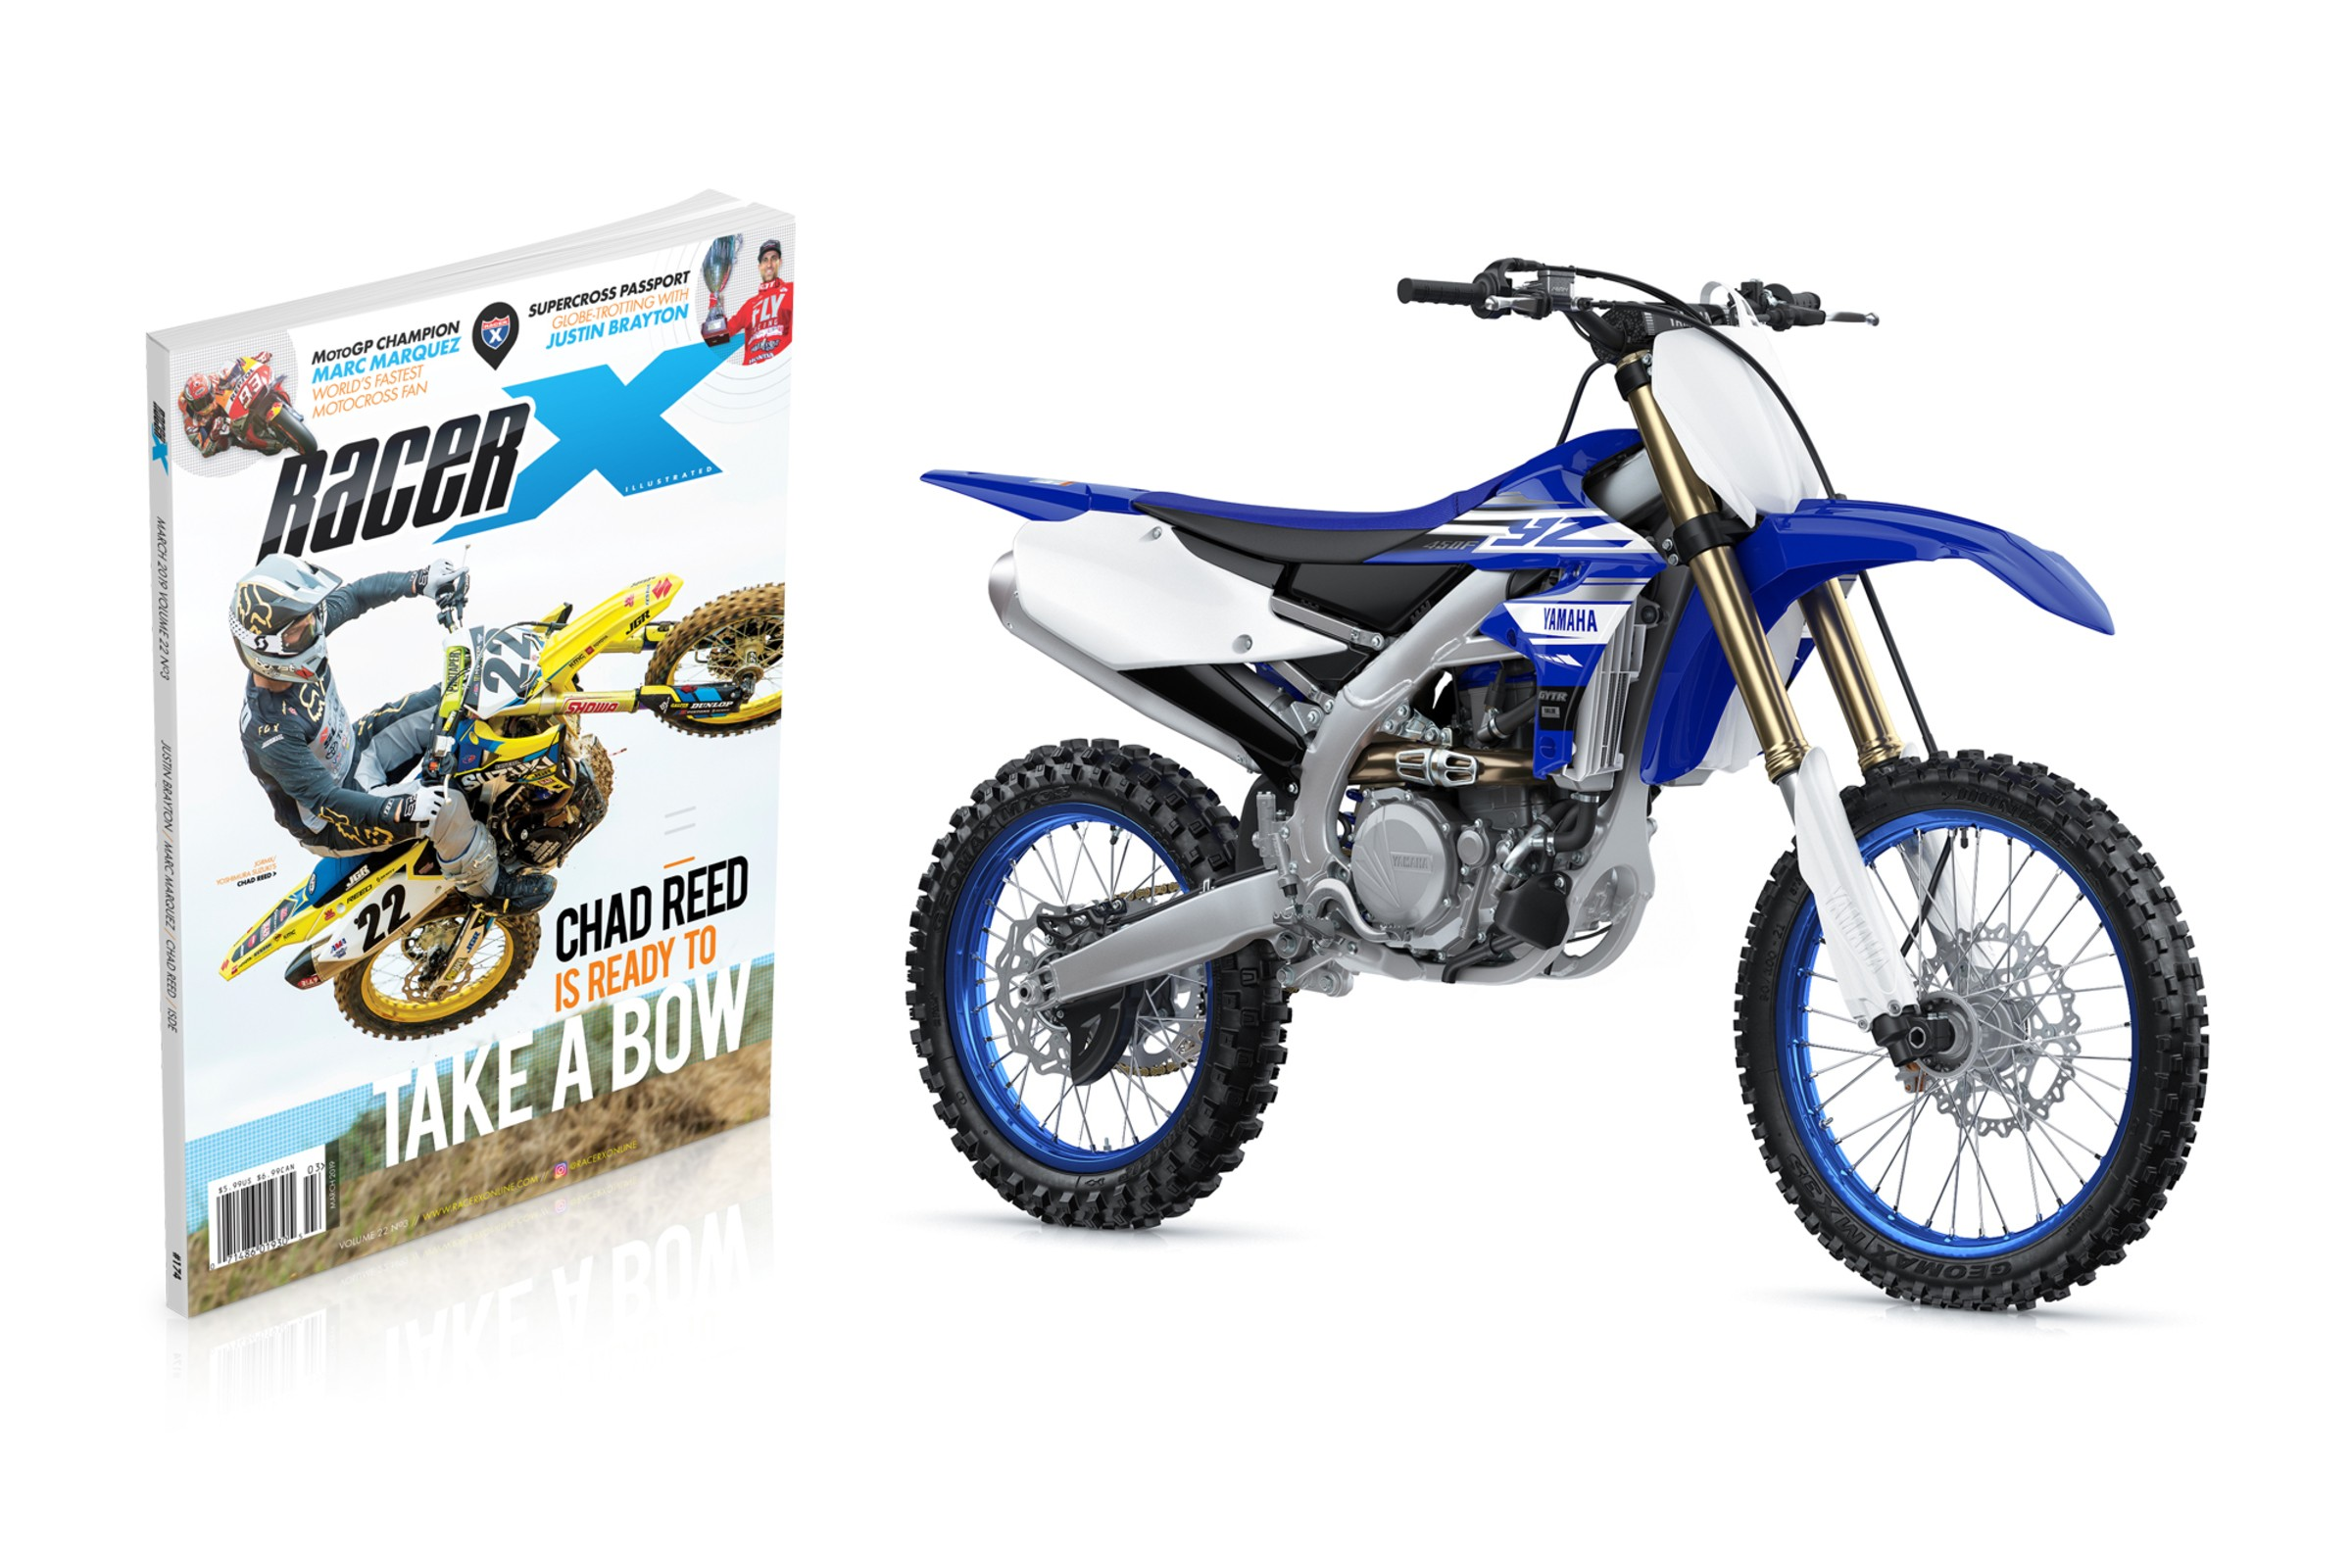 Enter To Win a 2019 Yamaha YZ450F at Arlington Supercross